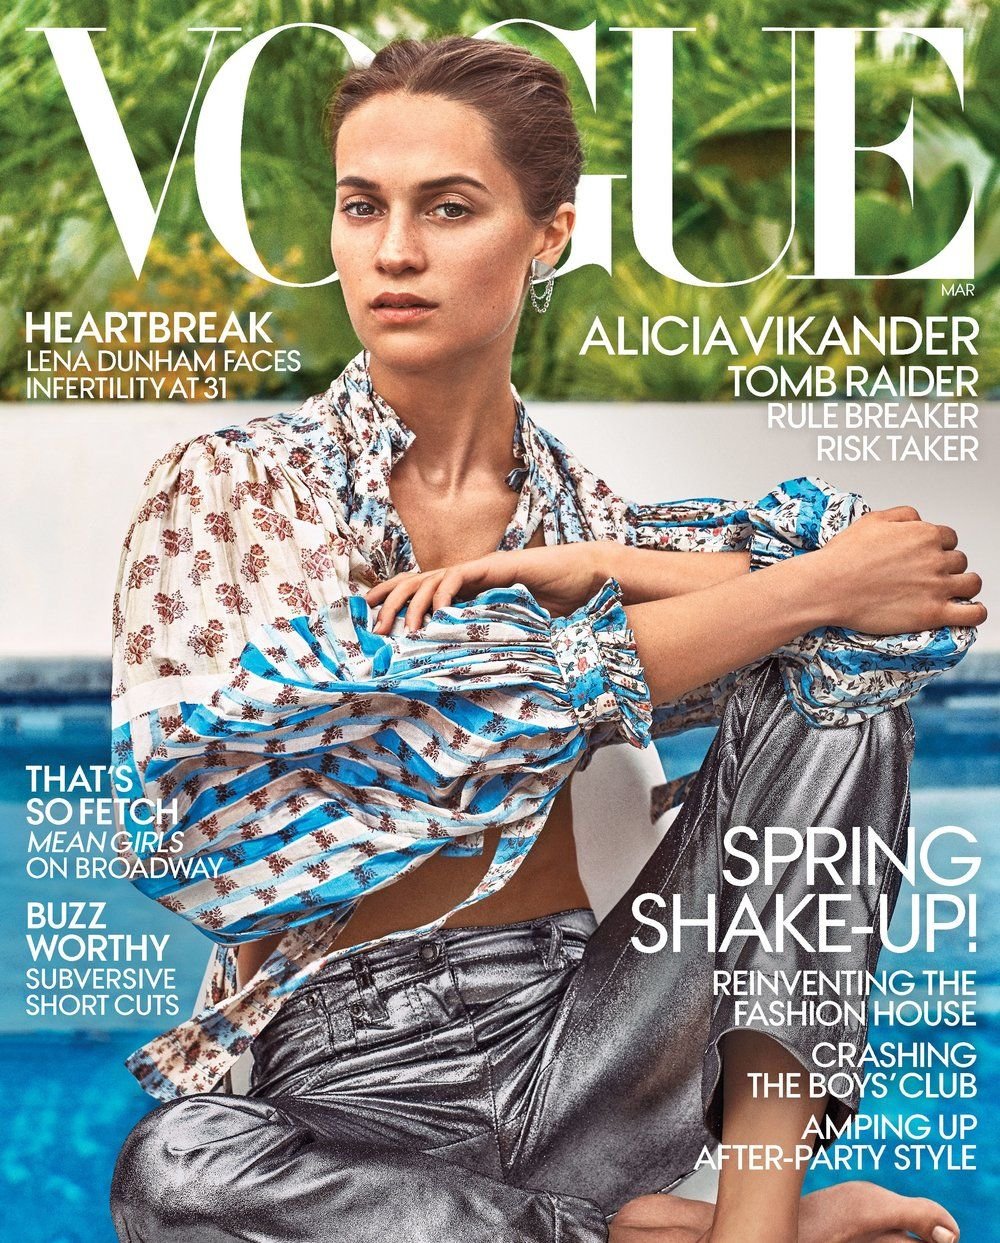 Alicia Vikander Covers The March 2018 Issue Of Vogue US